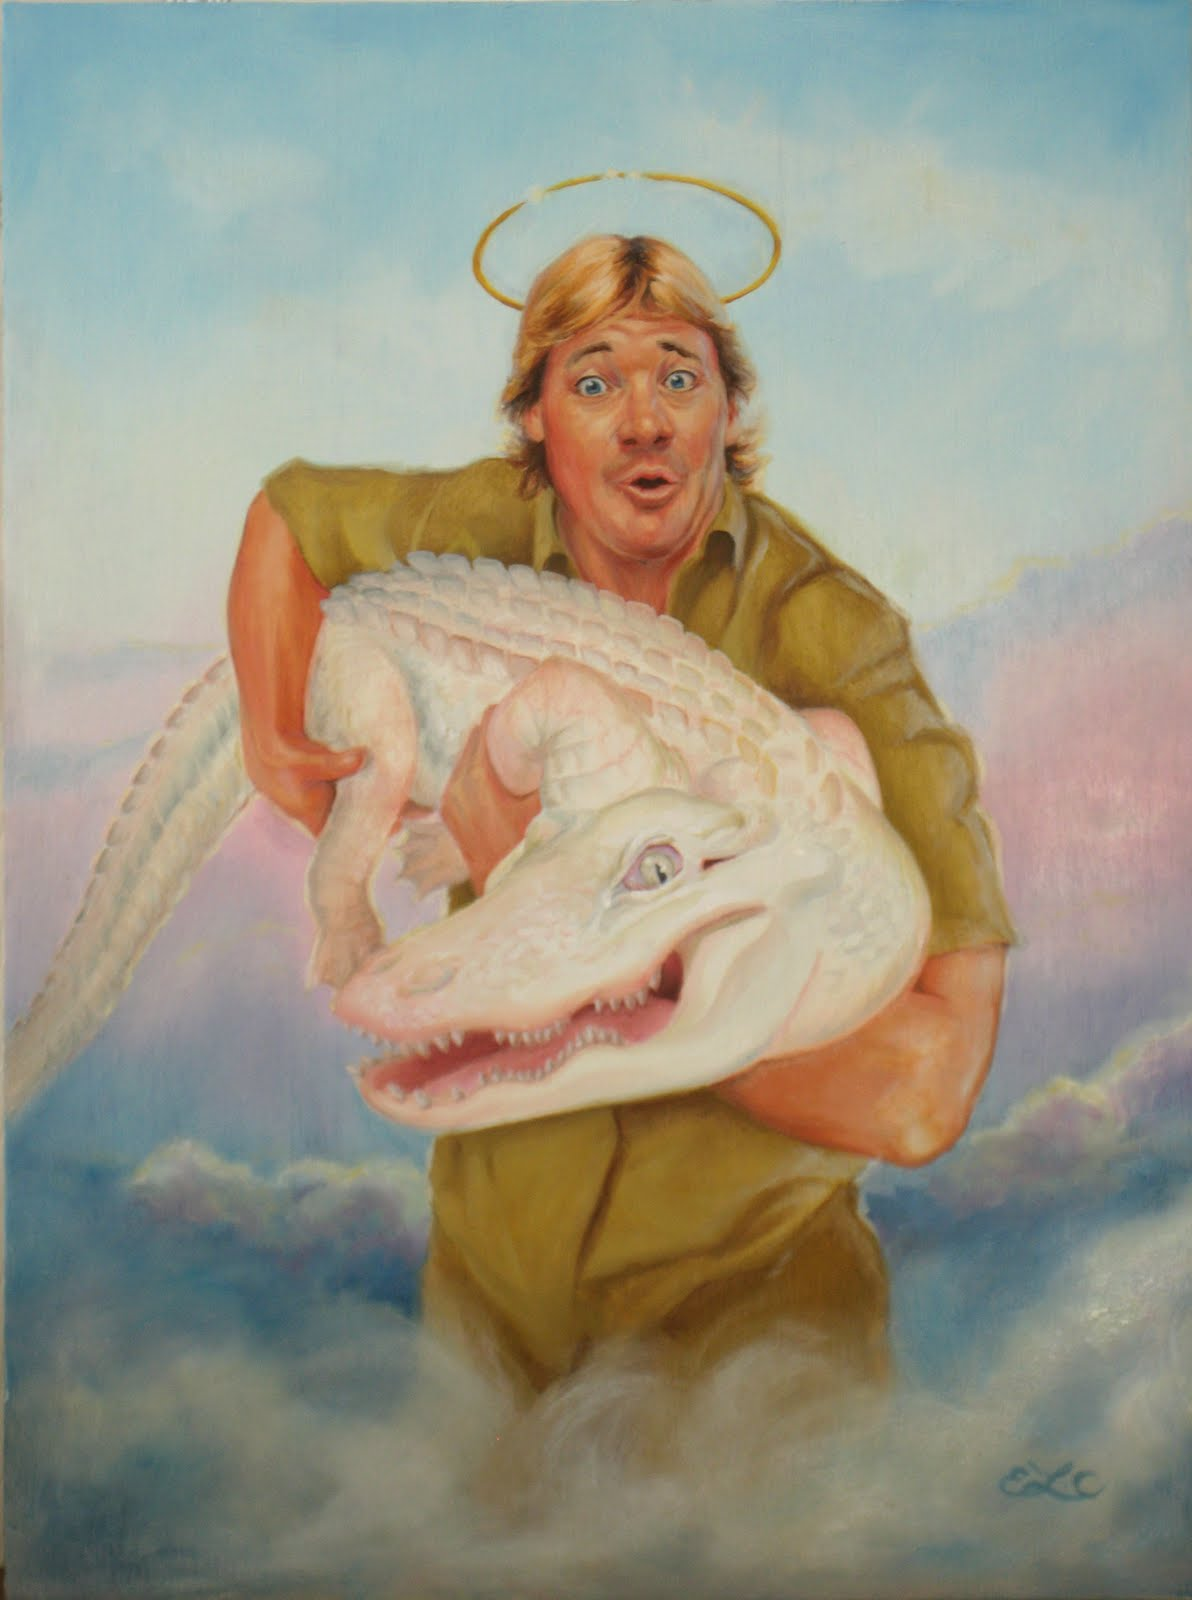 Emily Crowley Illustrator Steve Irwin